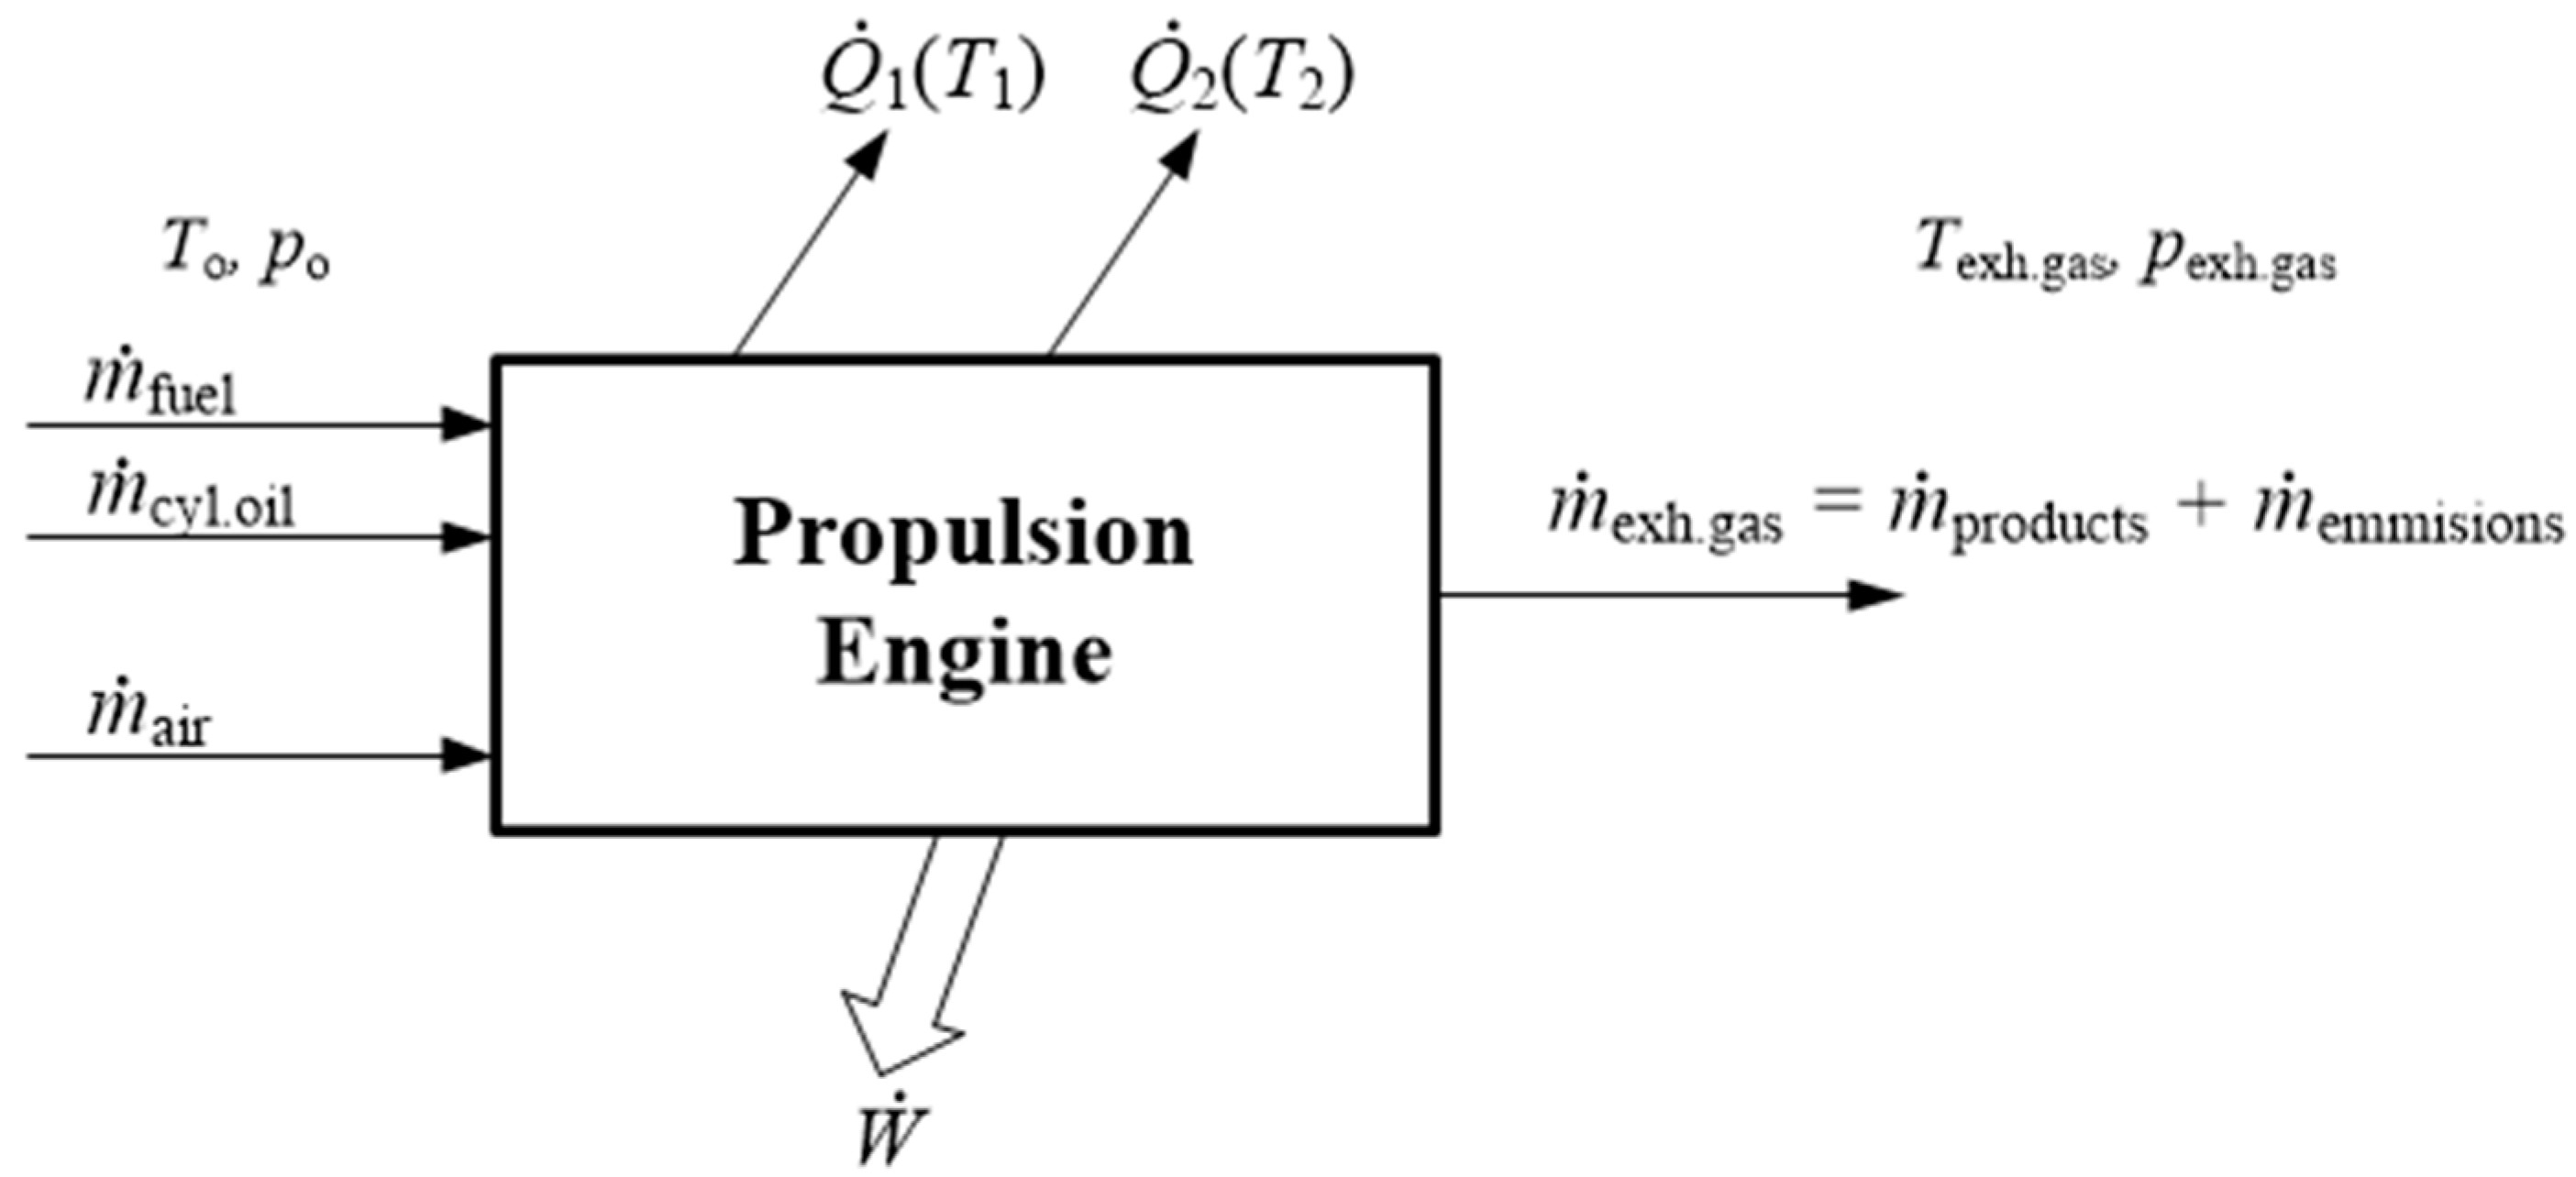 Port Timing Diagram Of Two Stroke Engine Energies Free Full Text Of Port Timing Diagram Of Two Stroke Engine